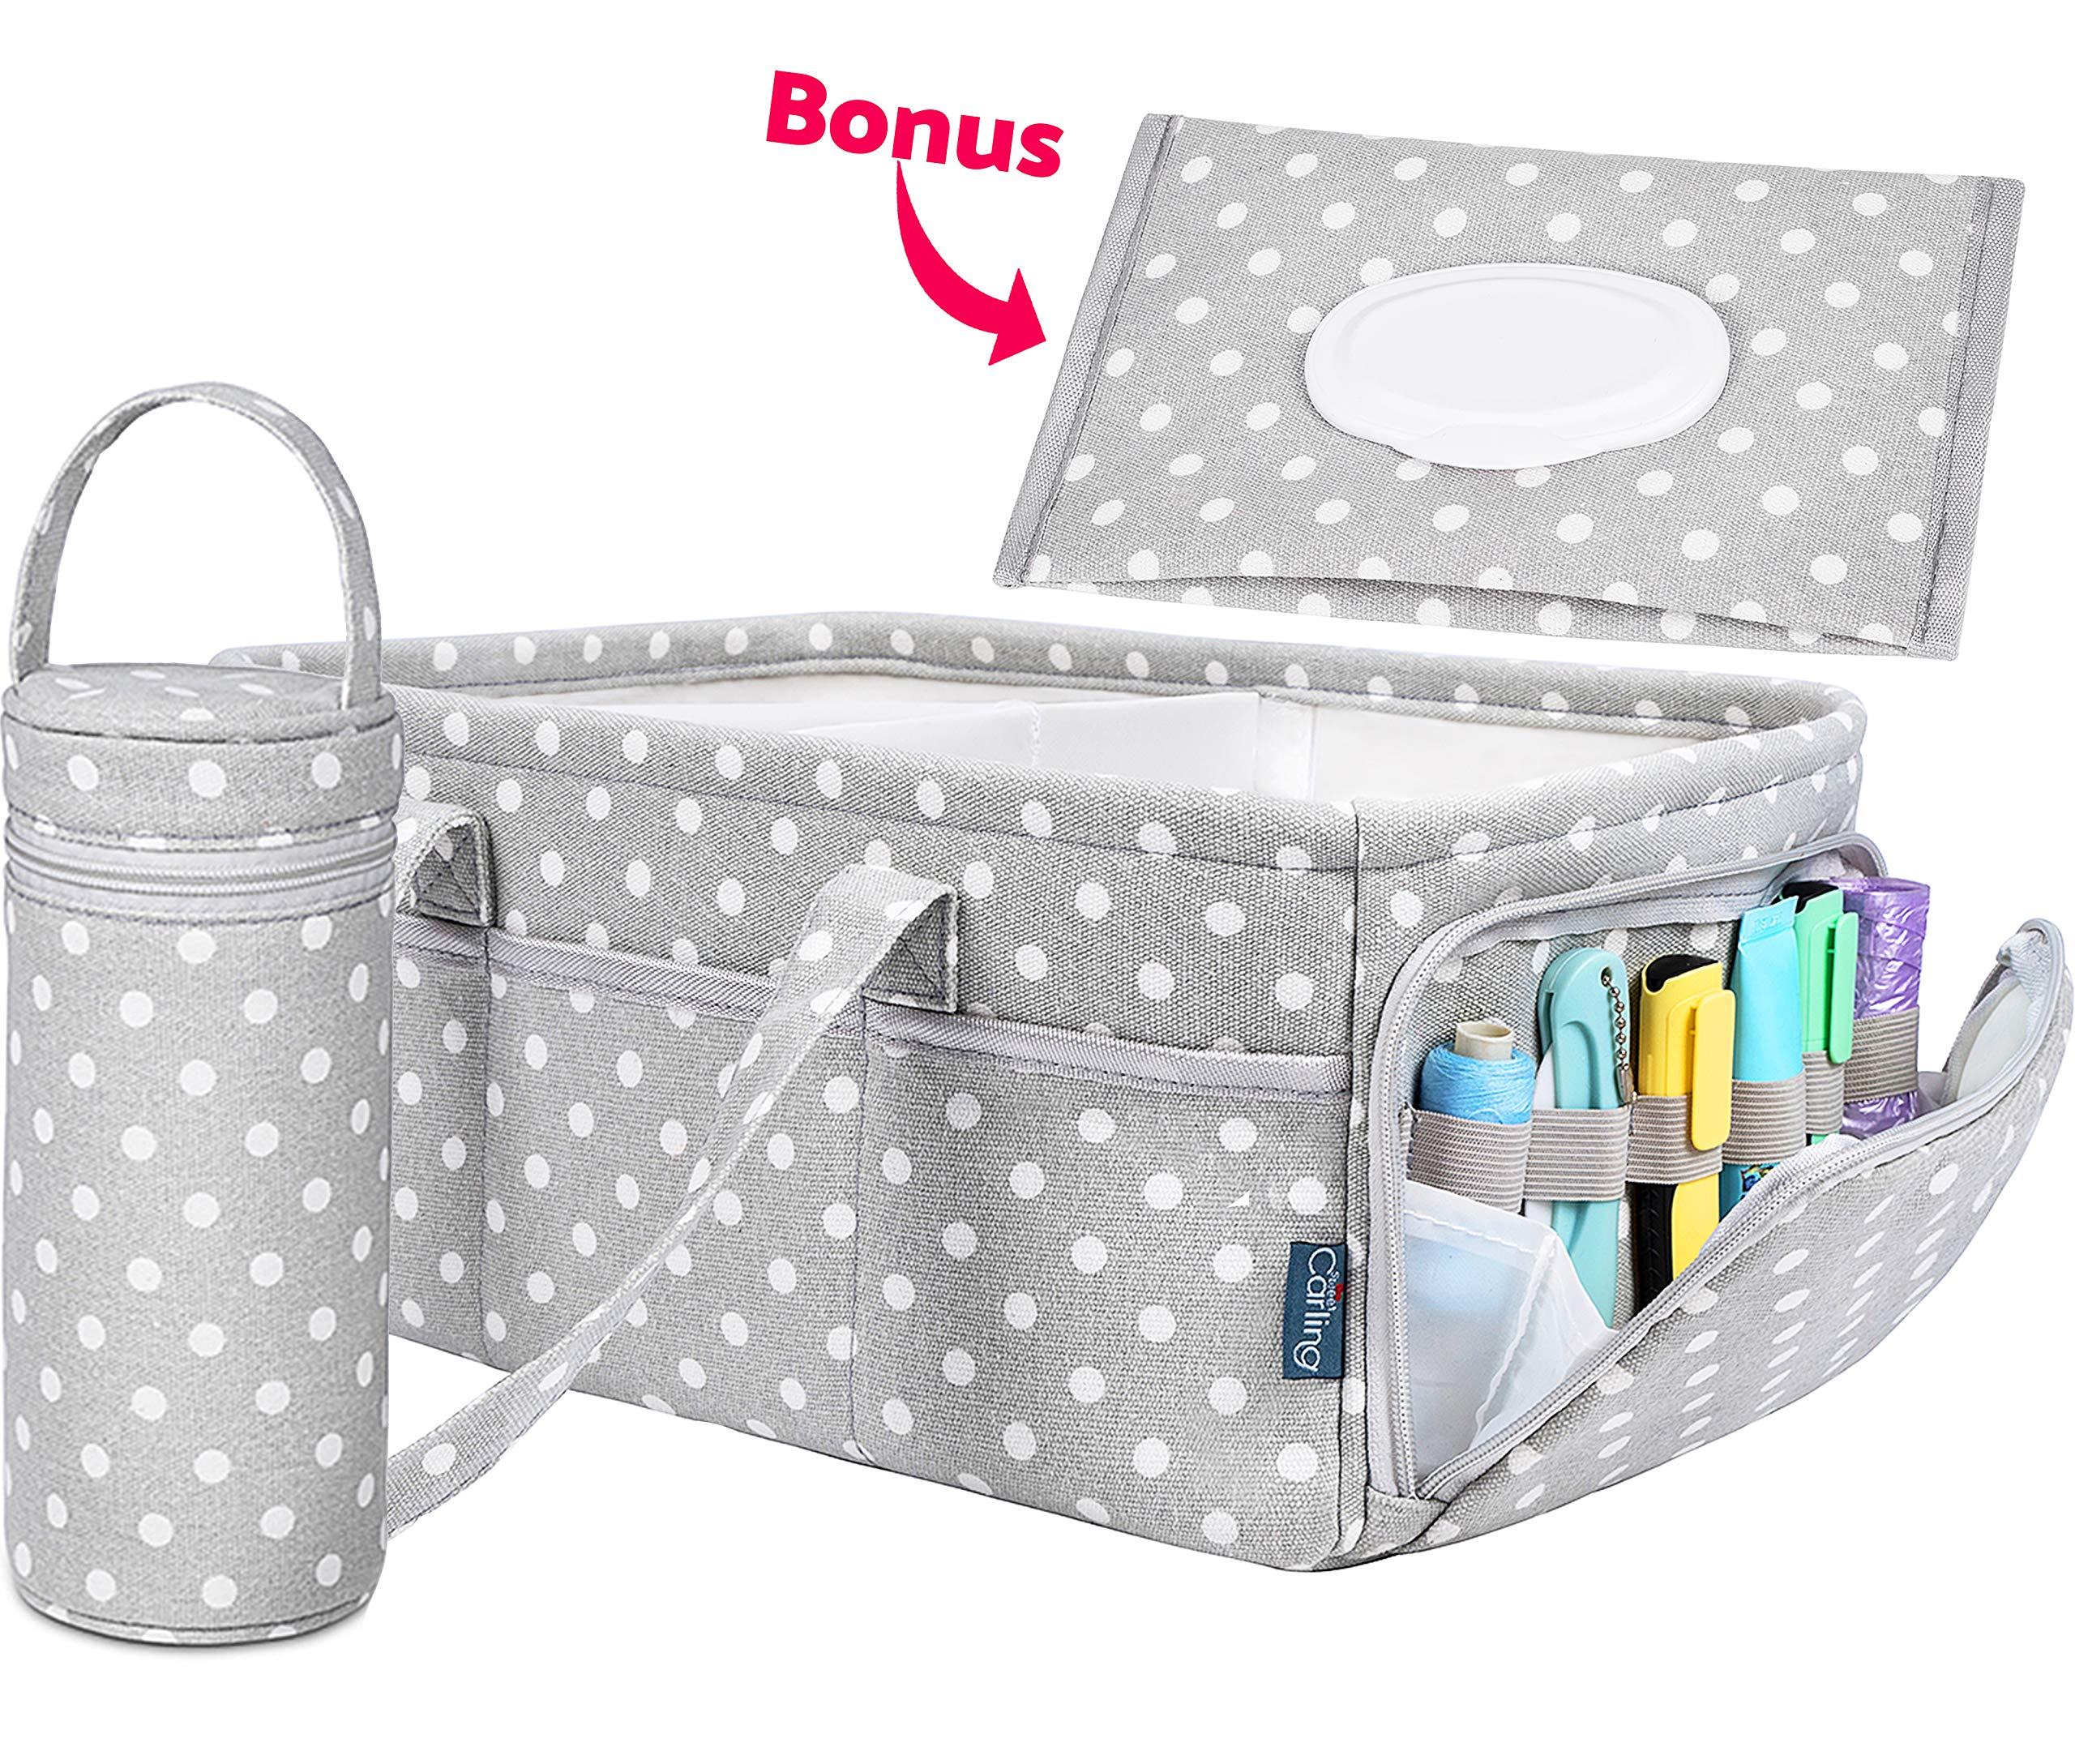 Portable Diaper Storage Caddy Organizer Baby Diaper Caddy Diapers Organizer Diaper Organizer Nursery Storage Bin and Car for Diapers and Baby Wipes Car Organizer VASTINI